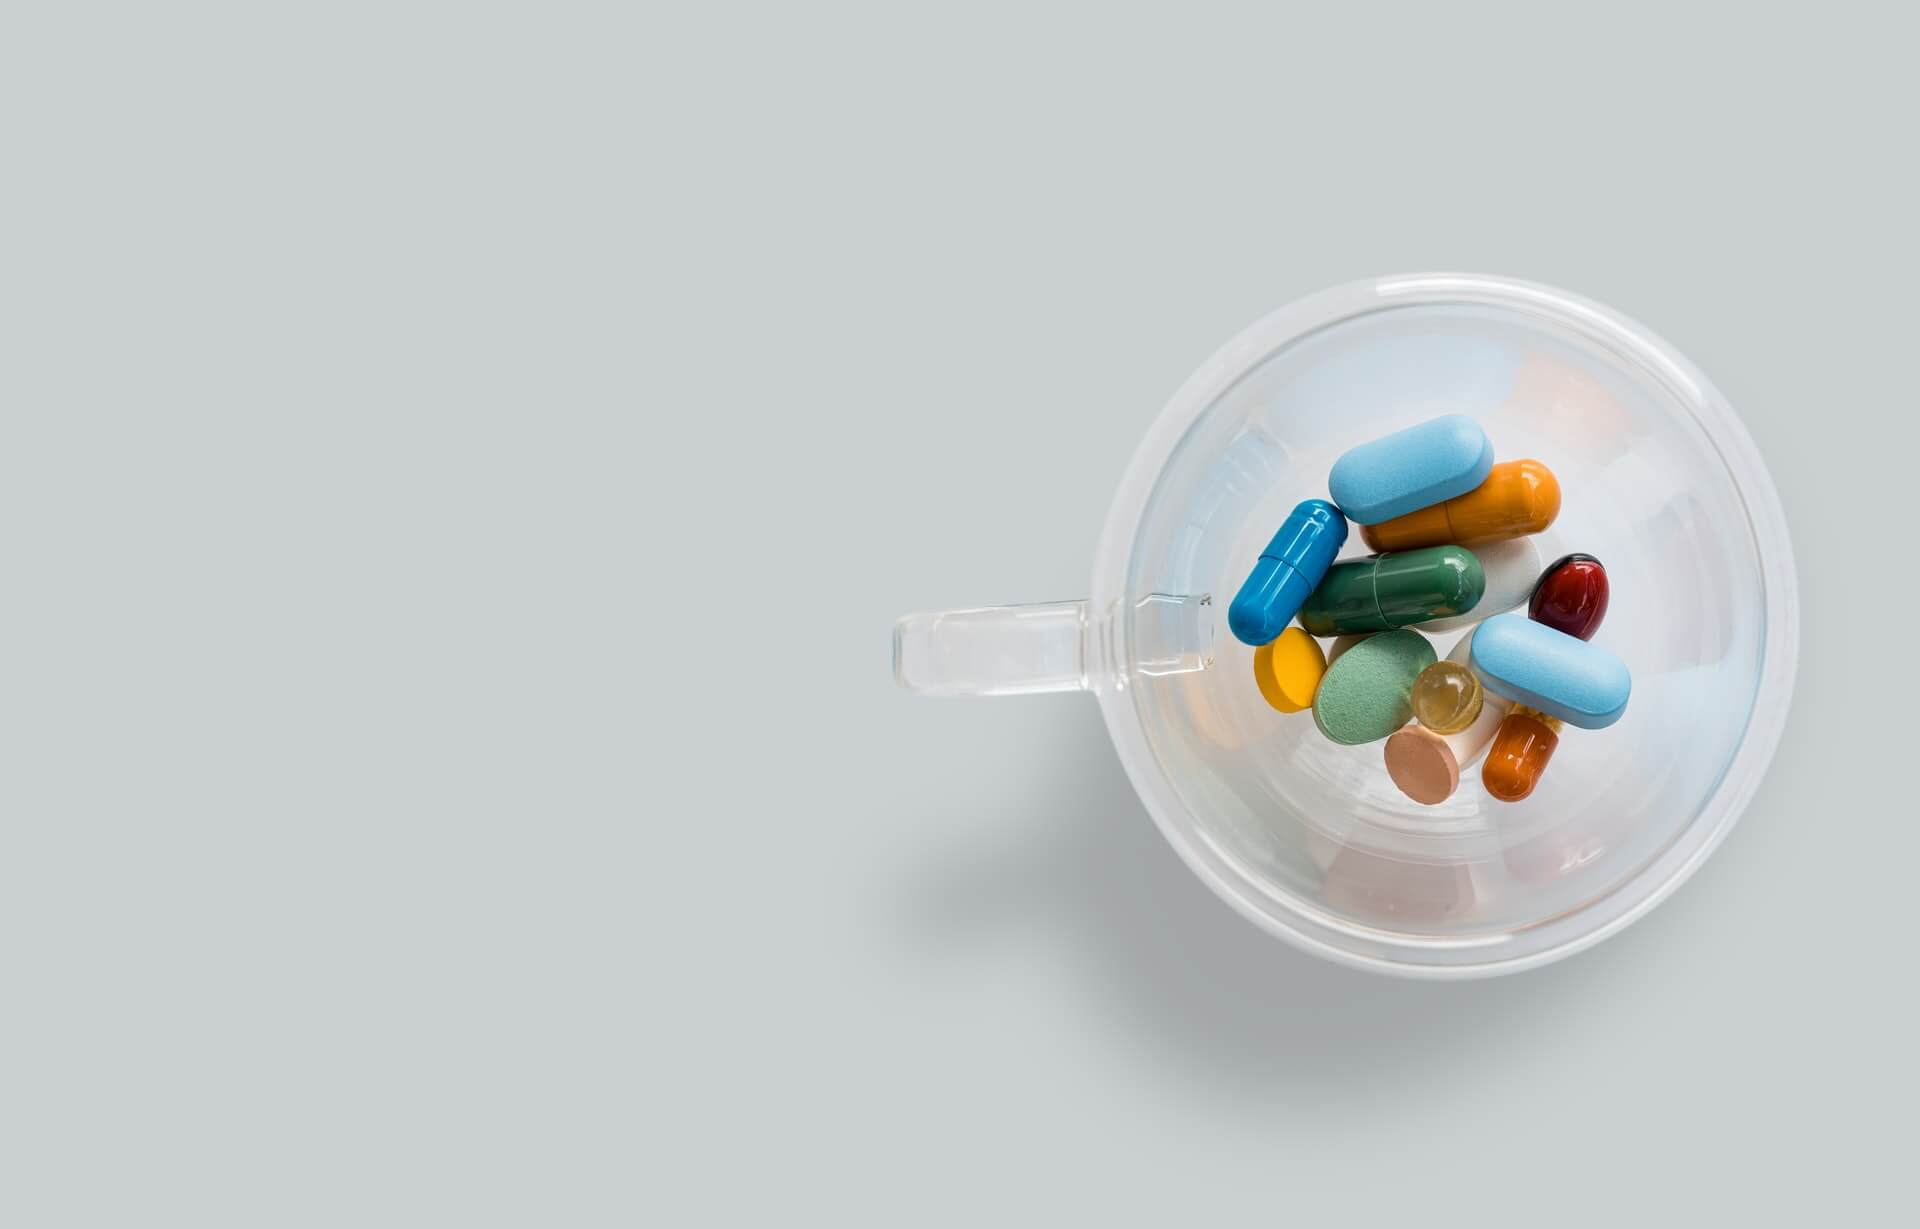 Colorful medicines in a cup